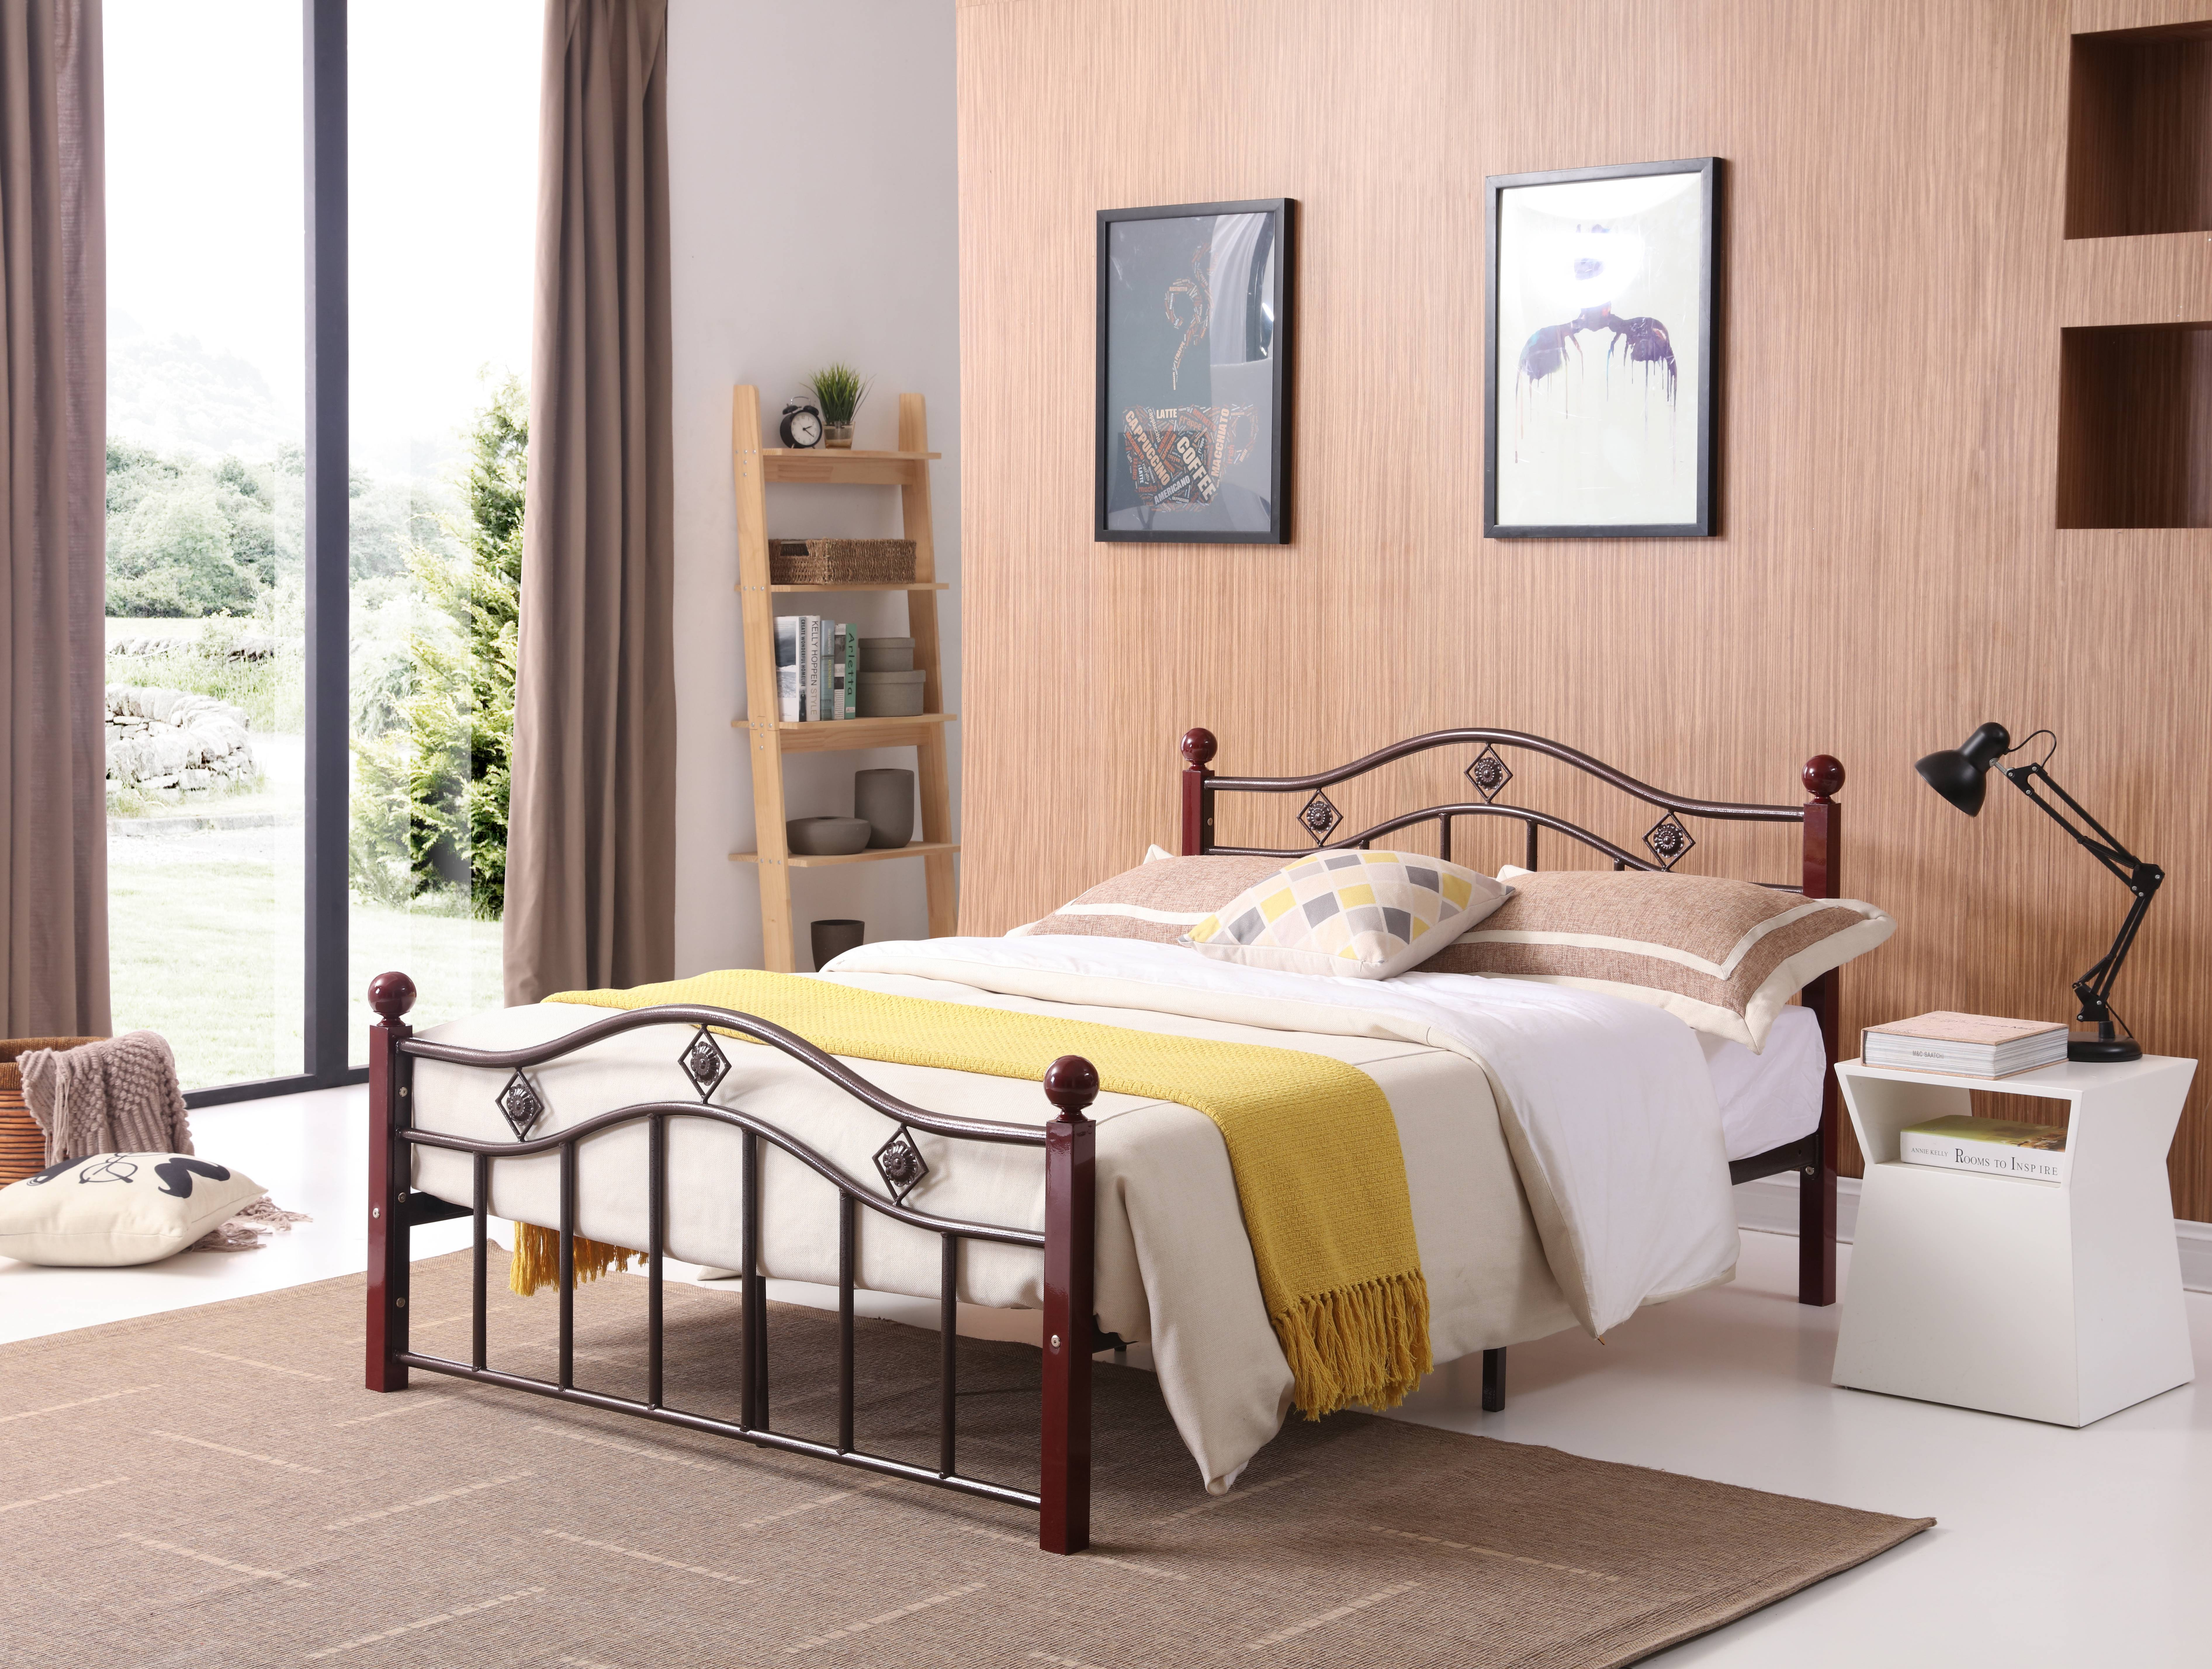 Hodedah Complete Bronze Metal Bed with Headboard, Footboard, Slats and Rails in Twin Size by Hodedah